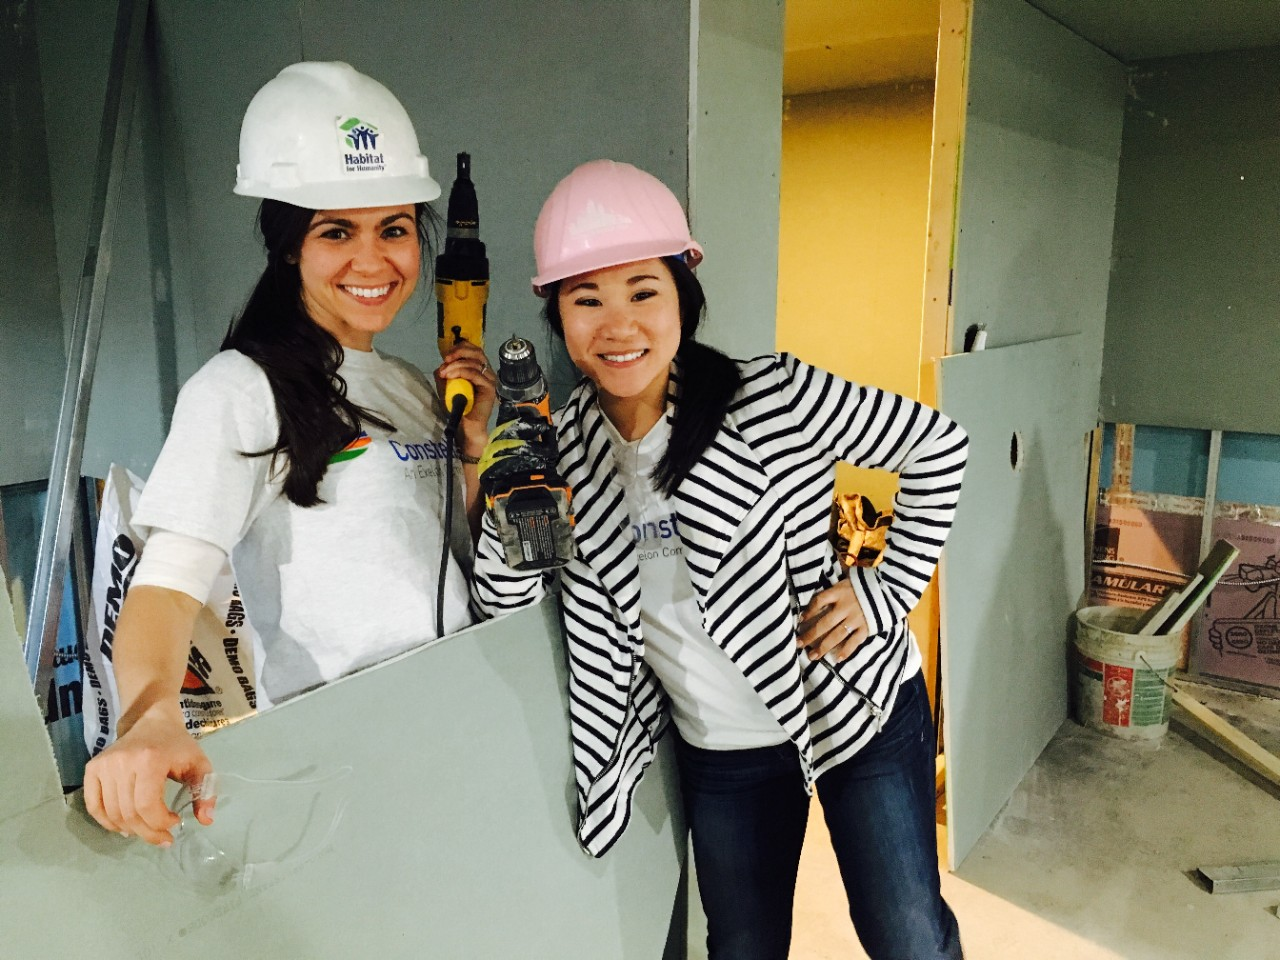 Constellation employees working with Habitat for Humanity